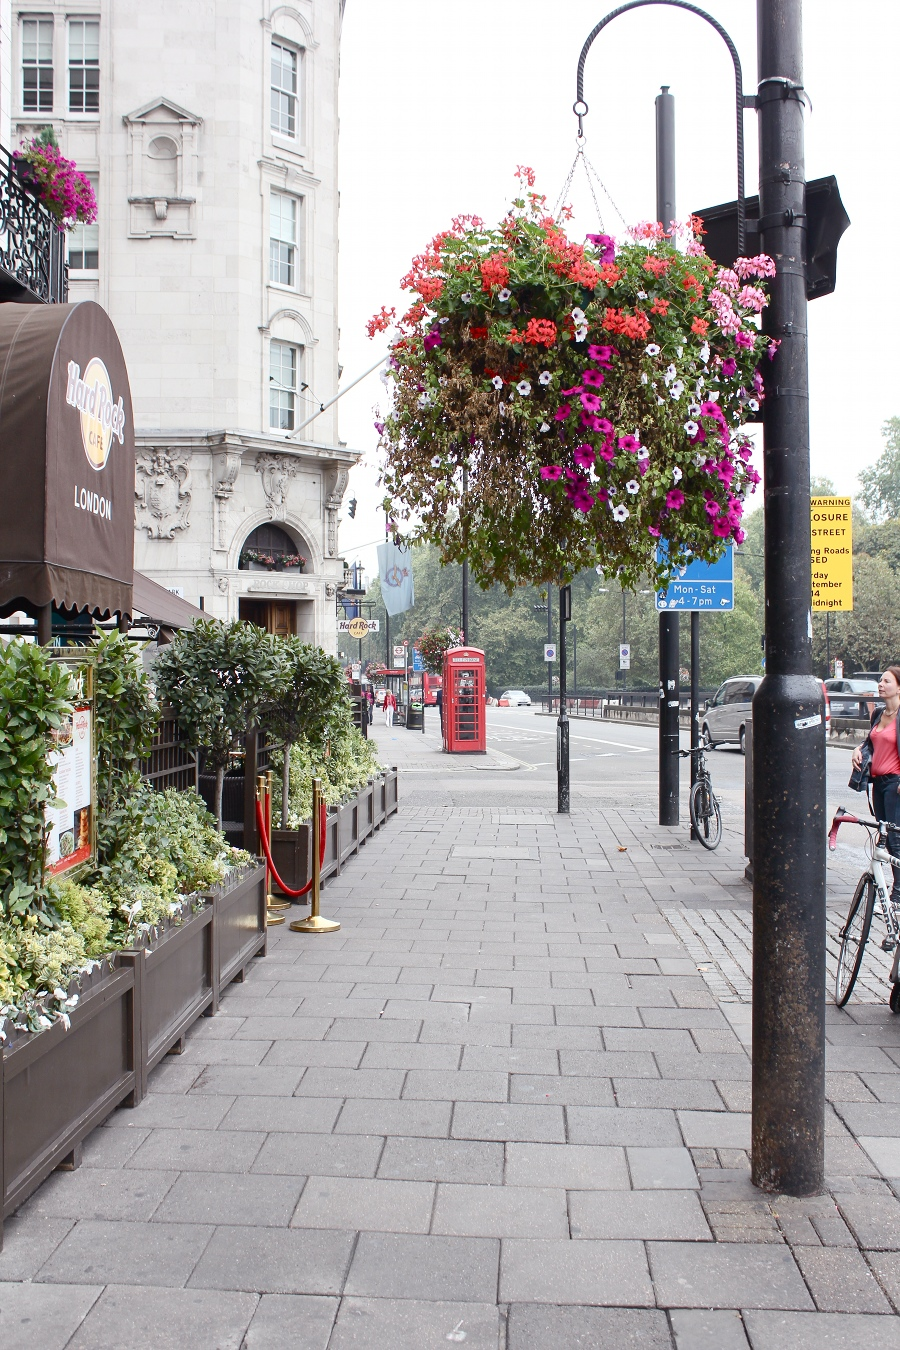 london-hard-rock-cafe-flowers-streetlight-telephone-box-red-british